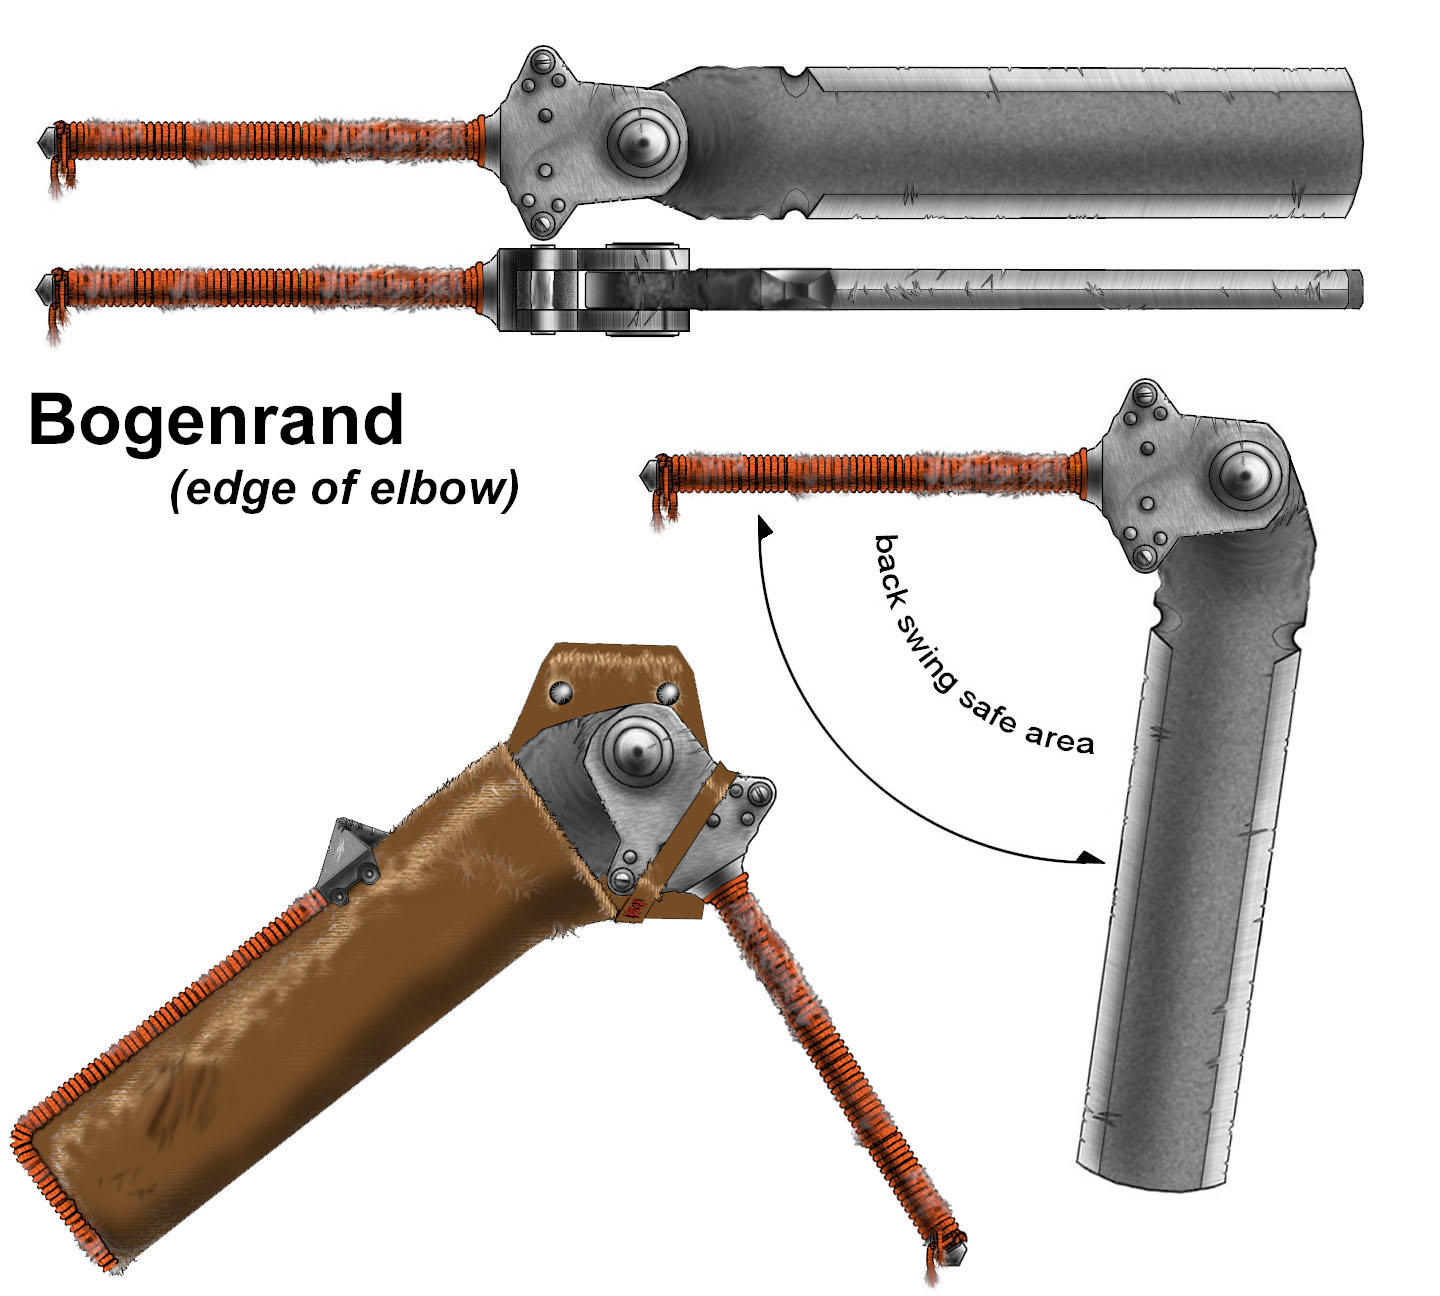 Bogenrand - Flail Sword by tower015